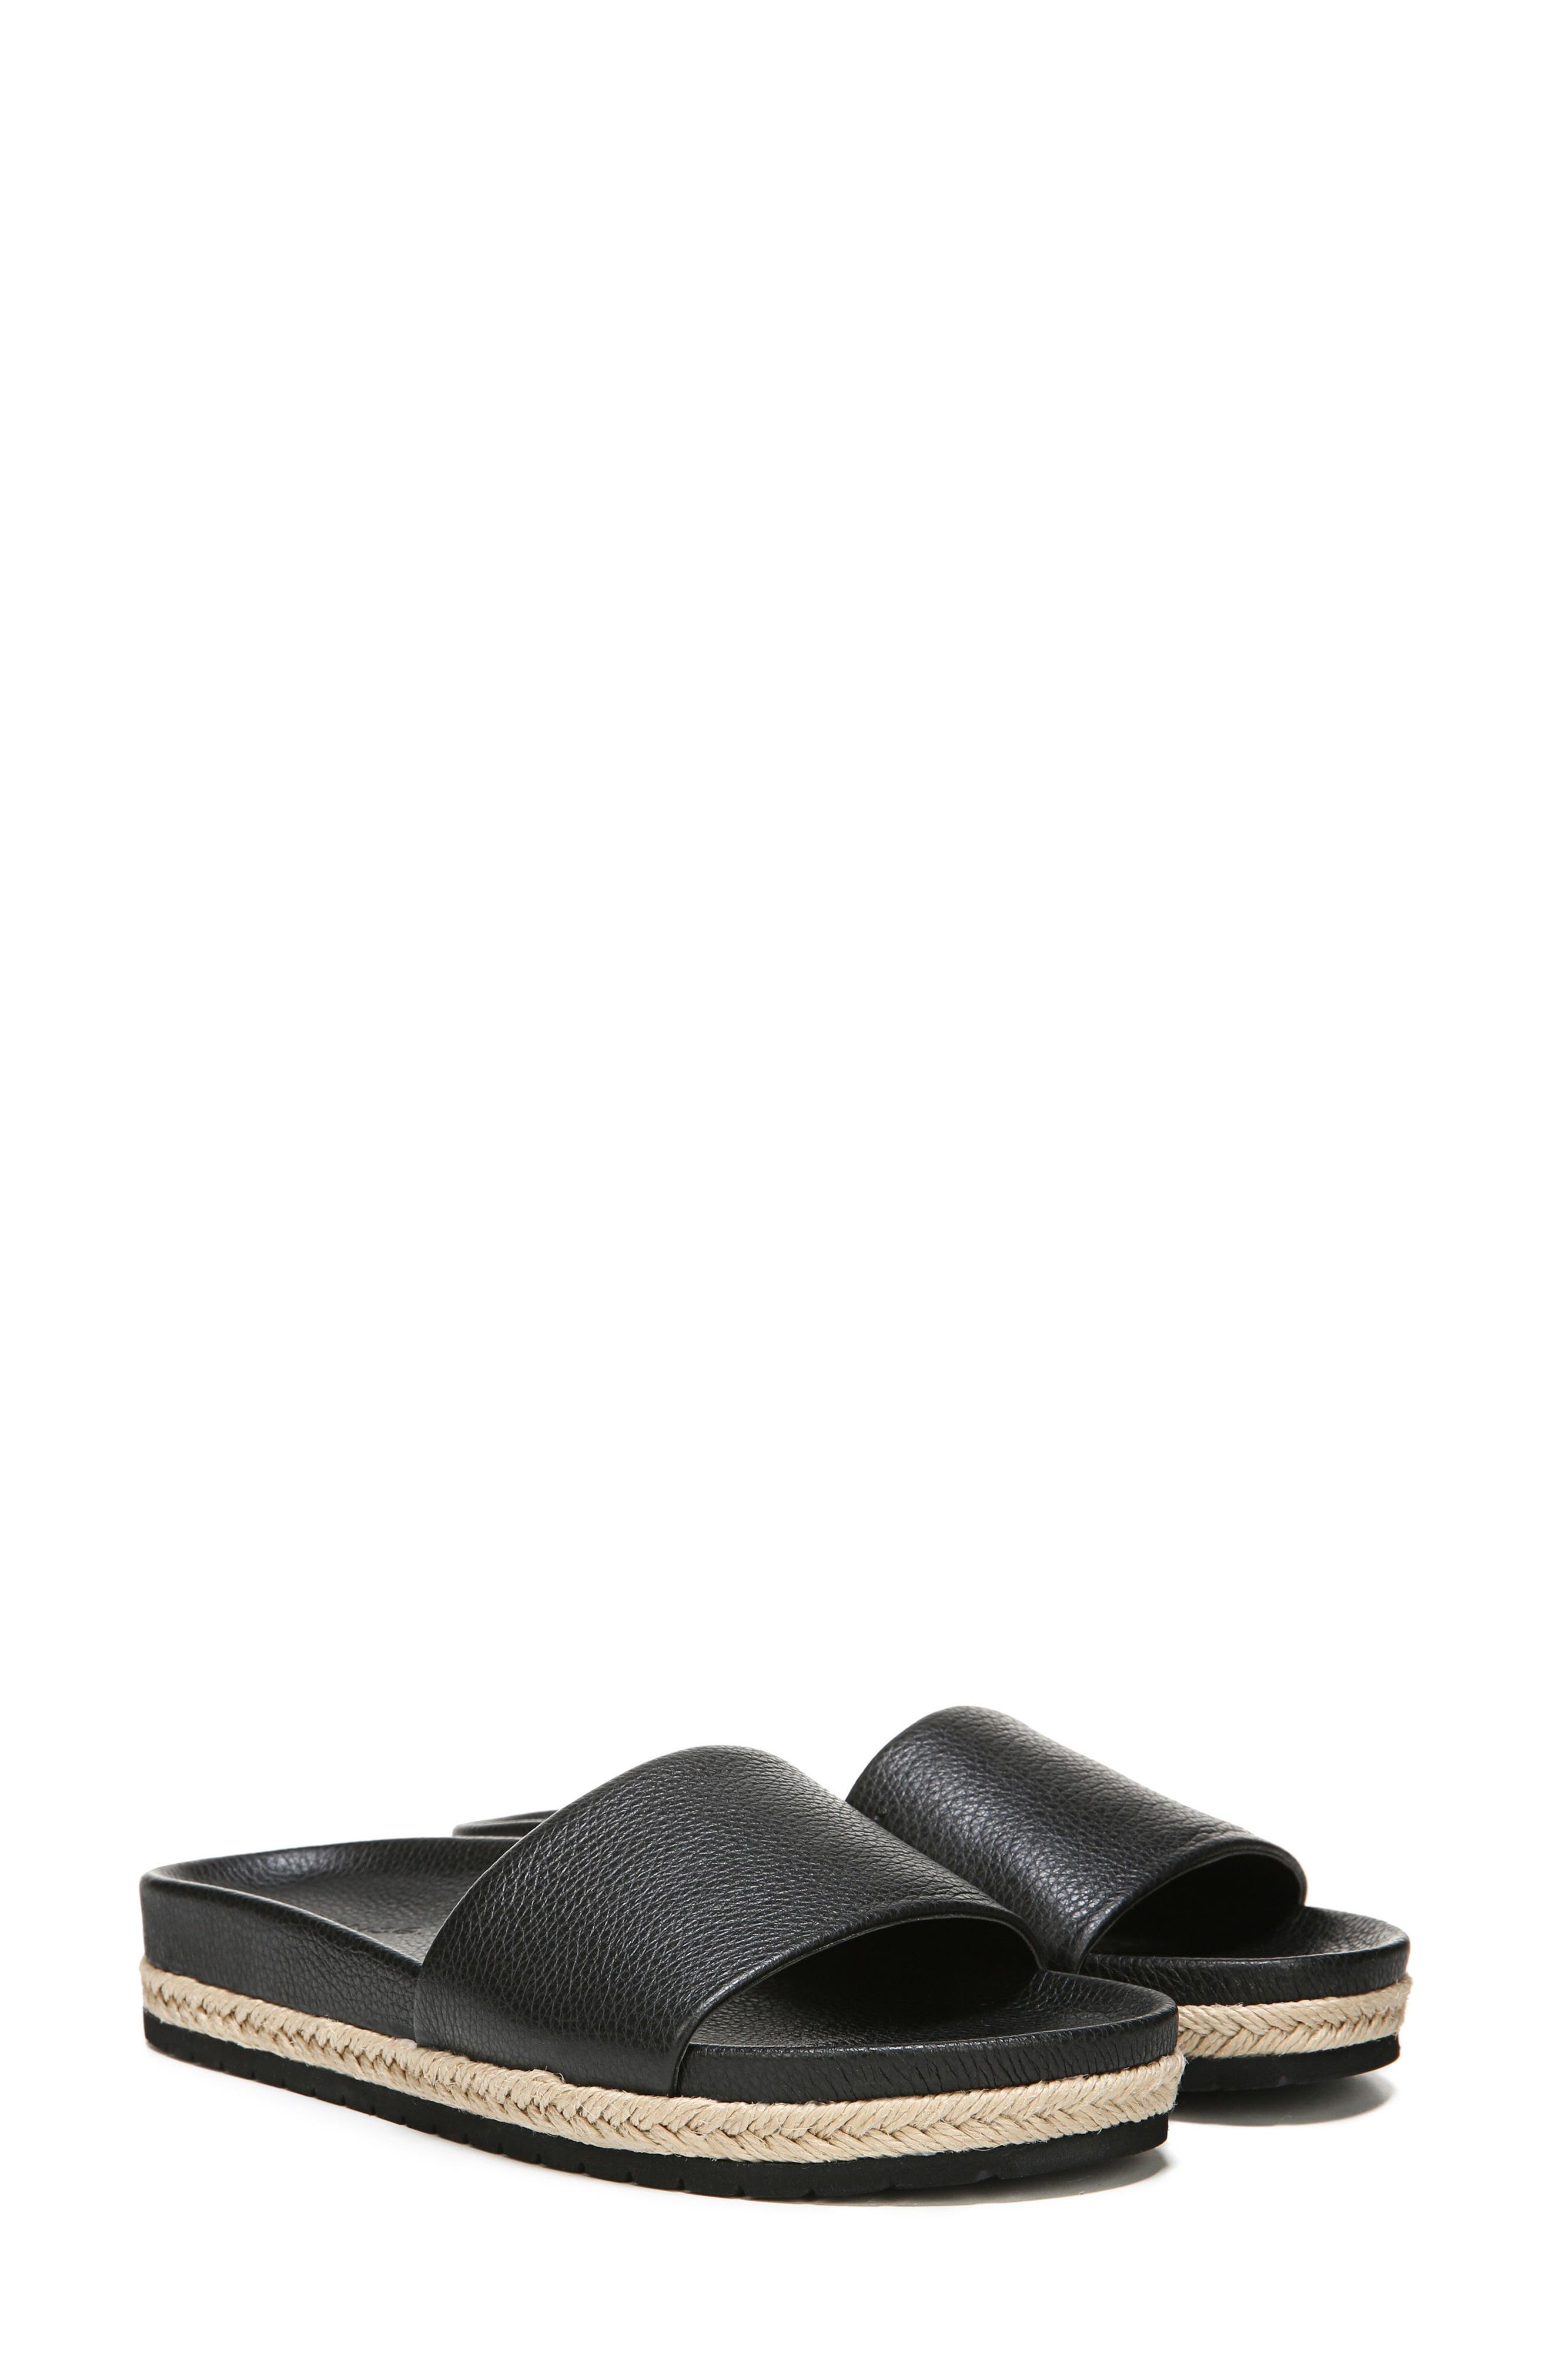 Aurelia Slide Sandal,                             Alternate thumbnail 8, color,                             001